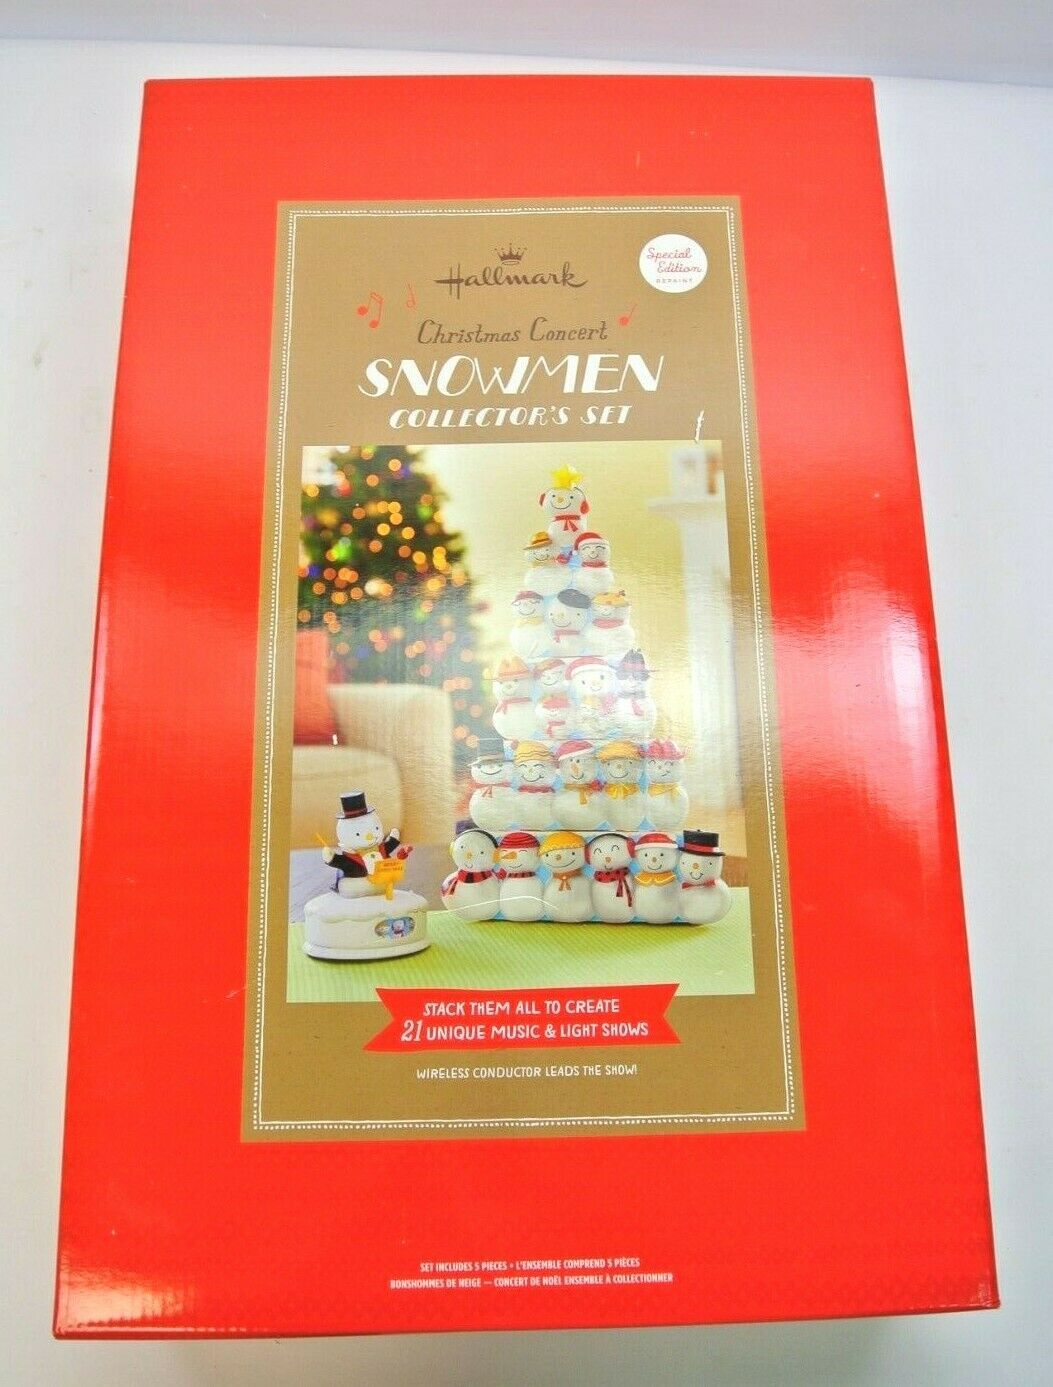 Hallmark Christmas Concert Snowmen Collector's Set Special Edition - Repaint